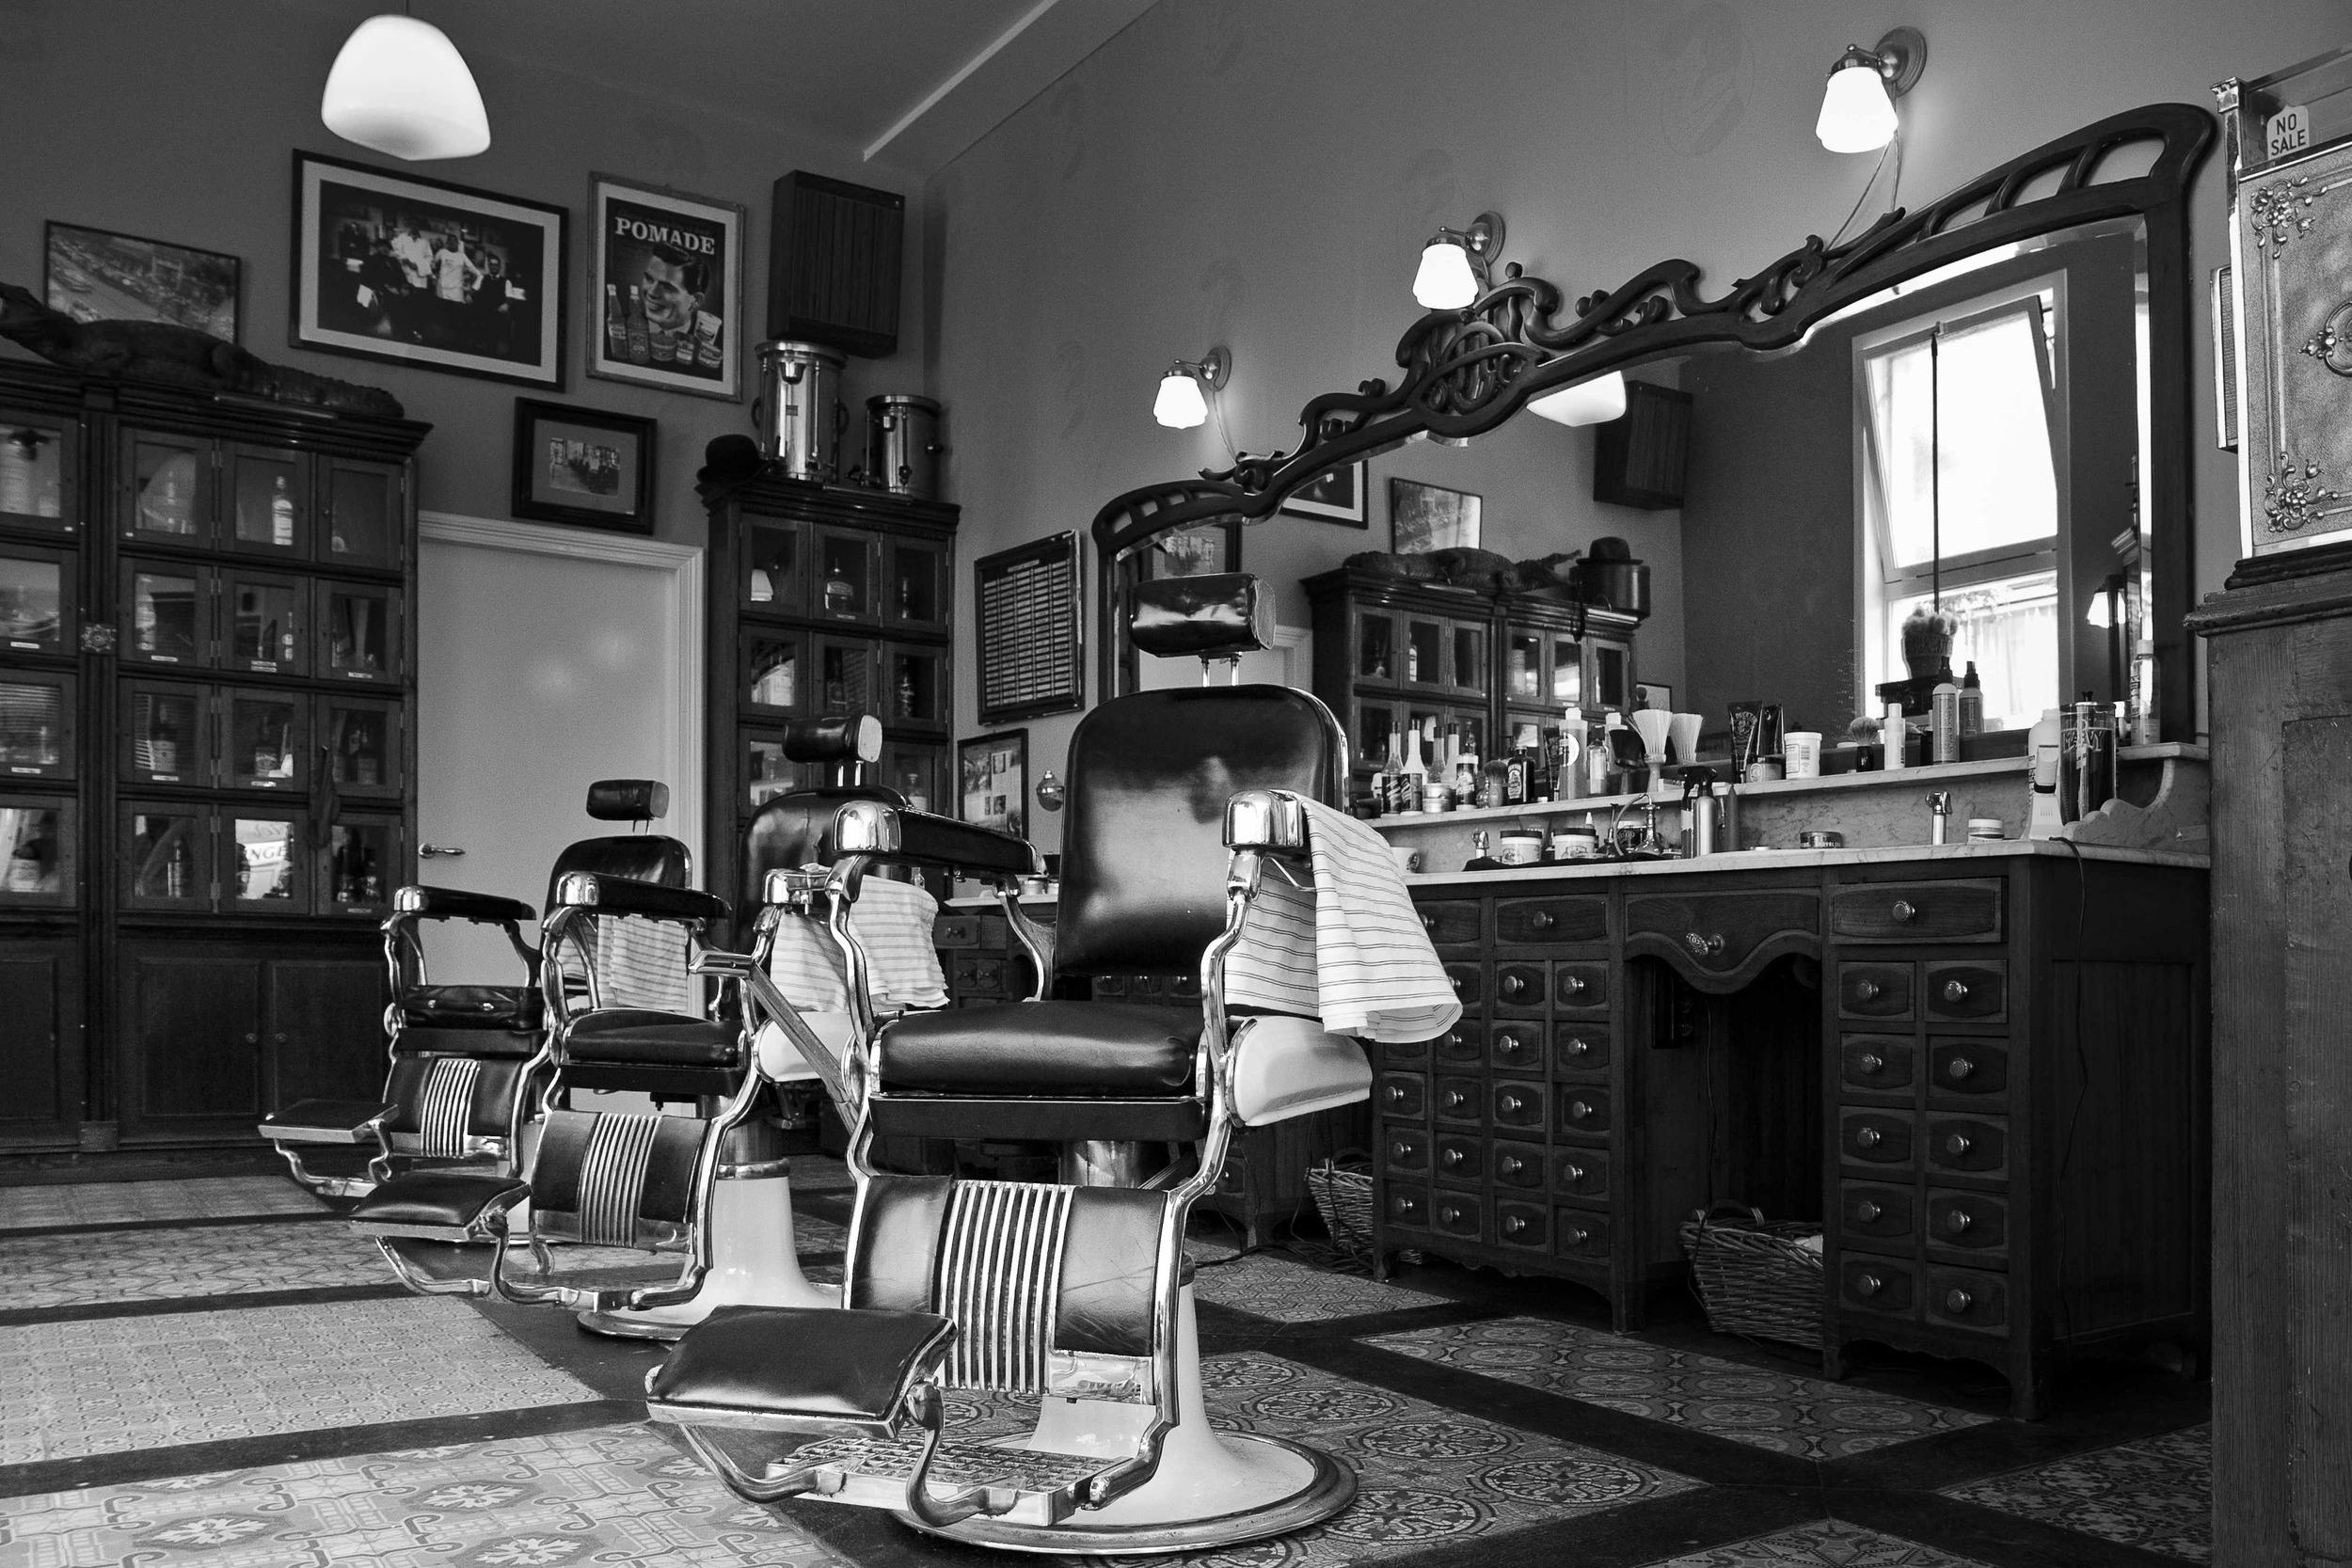 The Barbershop Shaving Parlor